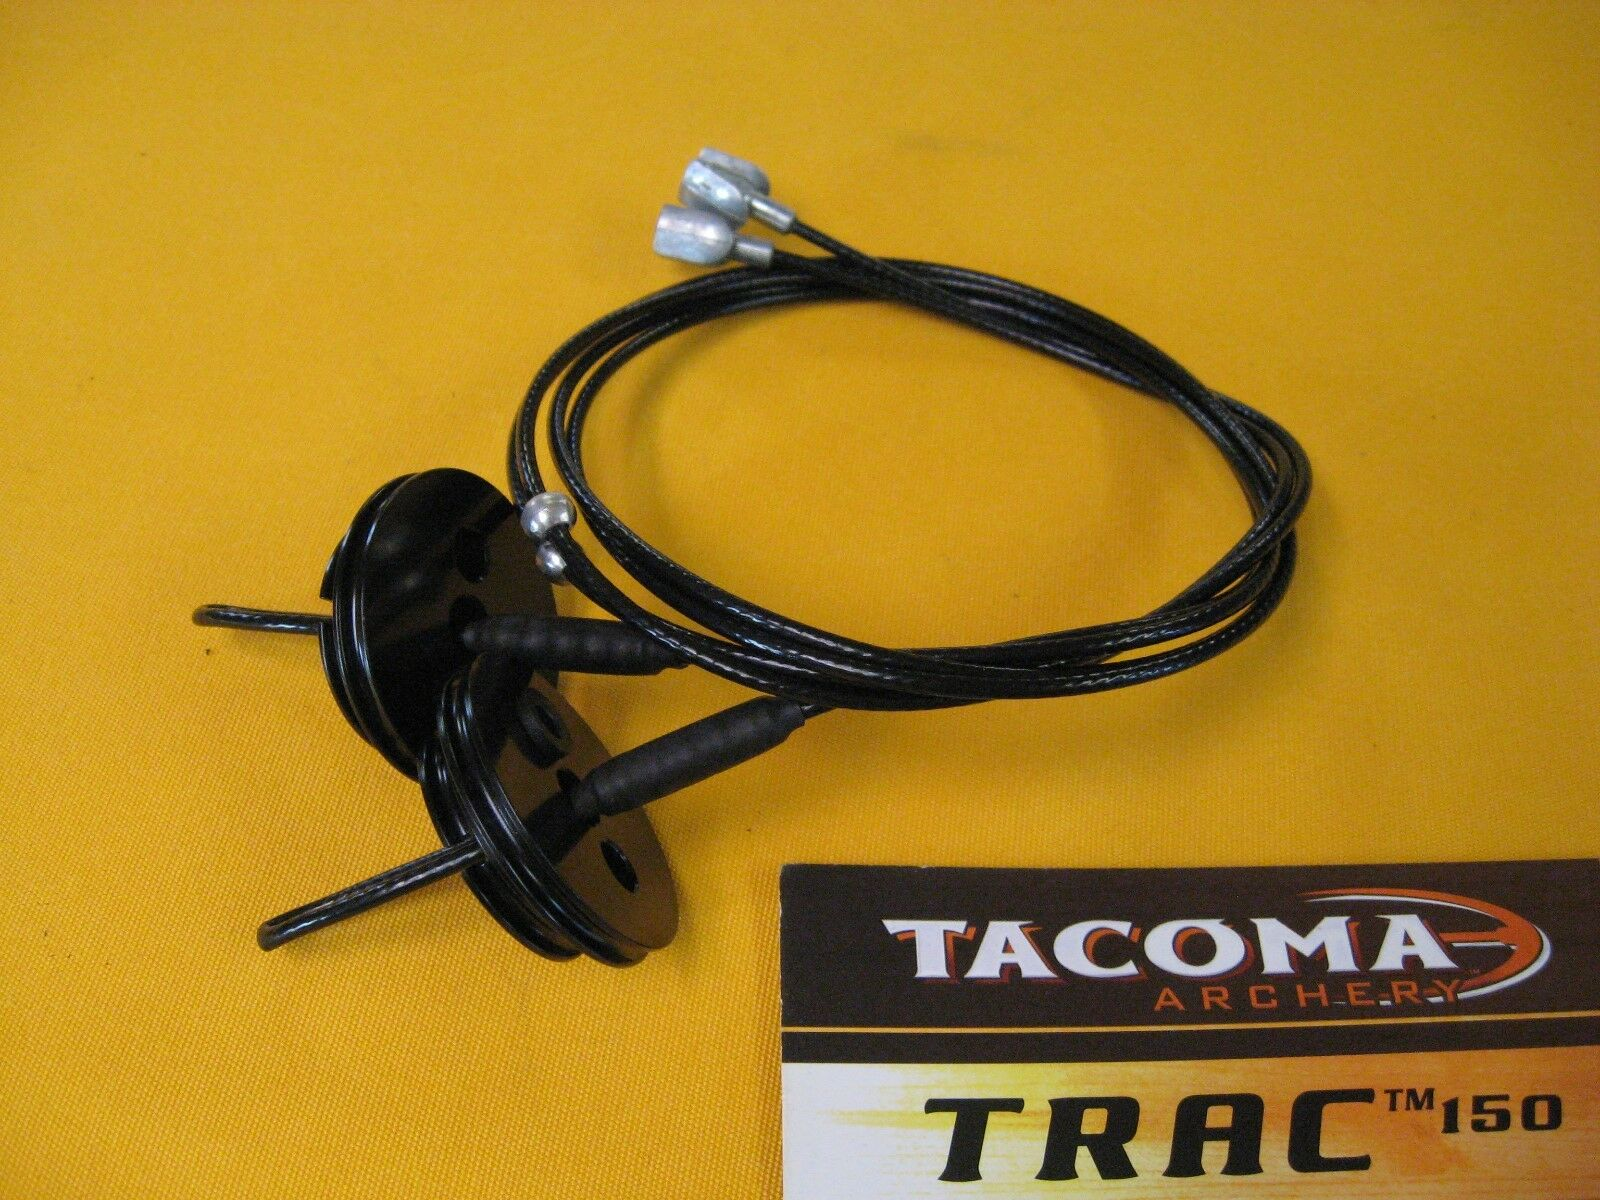 Brand New Horton Crossbow Cables (ST056) Tacoma Trac 150 with Cams